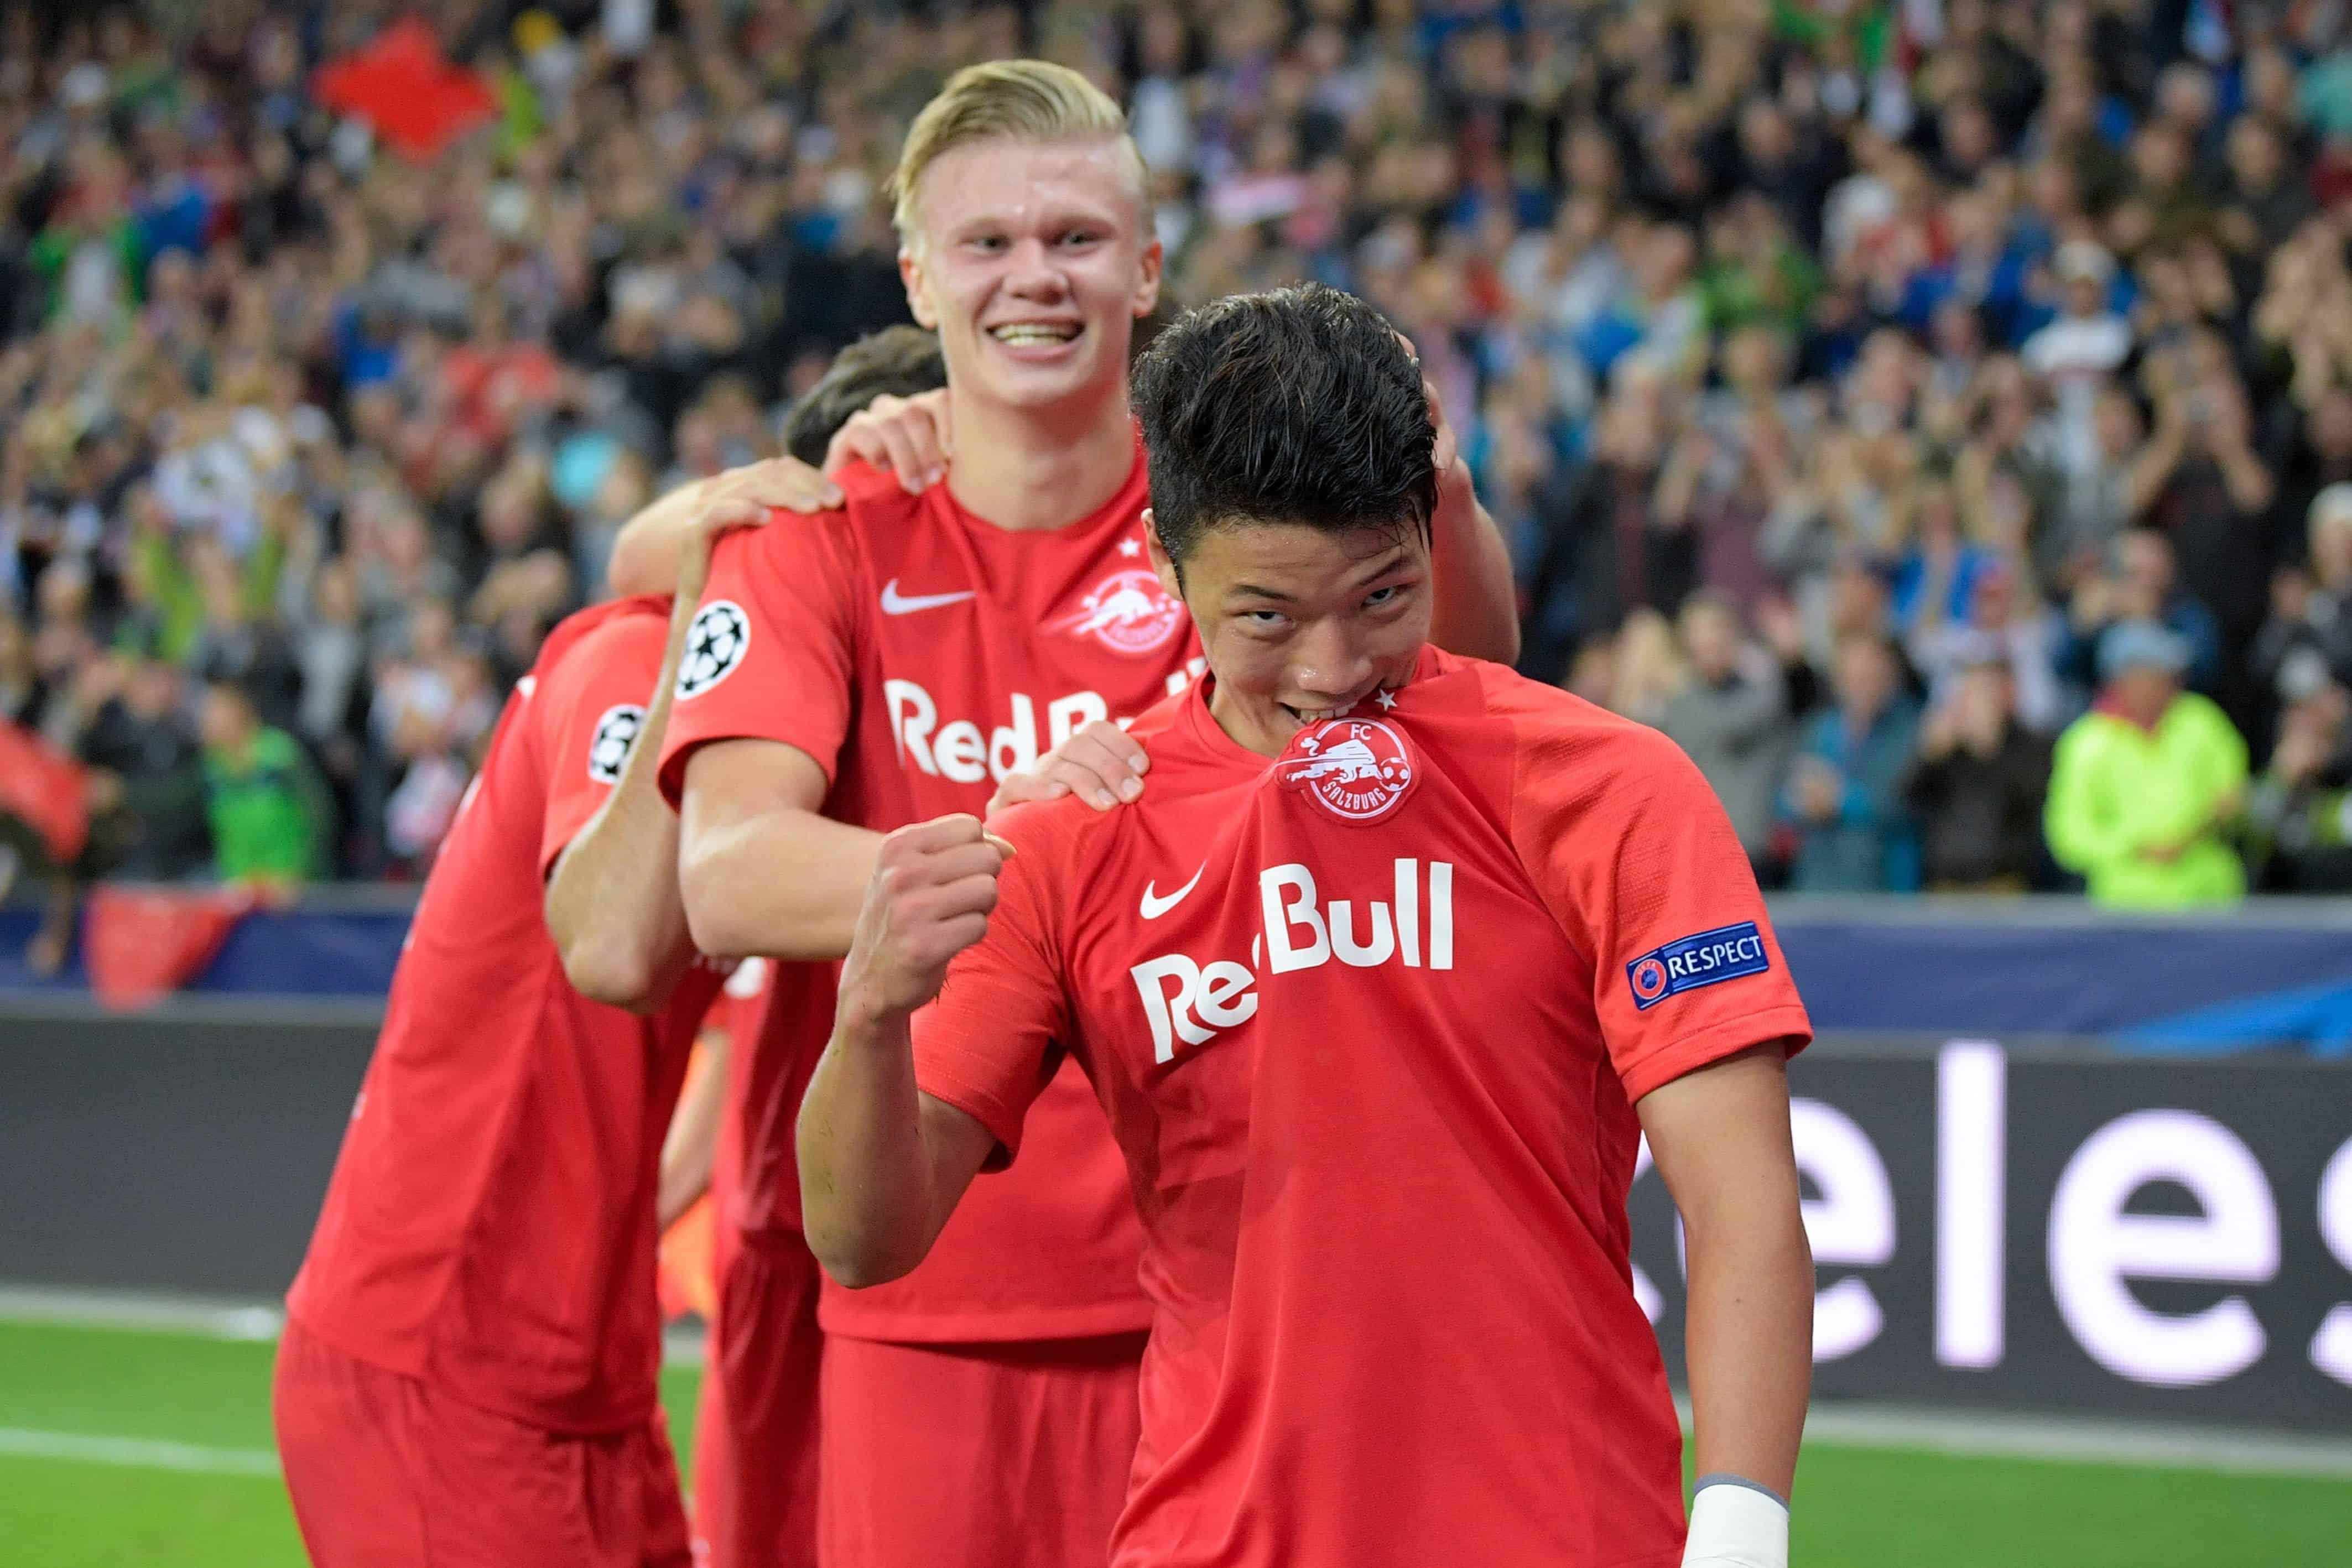 Salzburg, Austria September 17, 2019: CL - 19/20 - RB Salzburg Vs. KRC Genk re. Hee-Chan Hwang (FC Salzburg), cheers after his goal to 3: 0, with his teammates.jubilation / joy / emotion / goaljubel / goalkeeper / goalkeeper / | usage worldwide